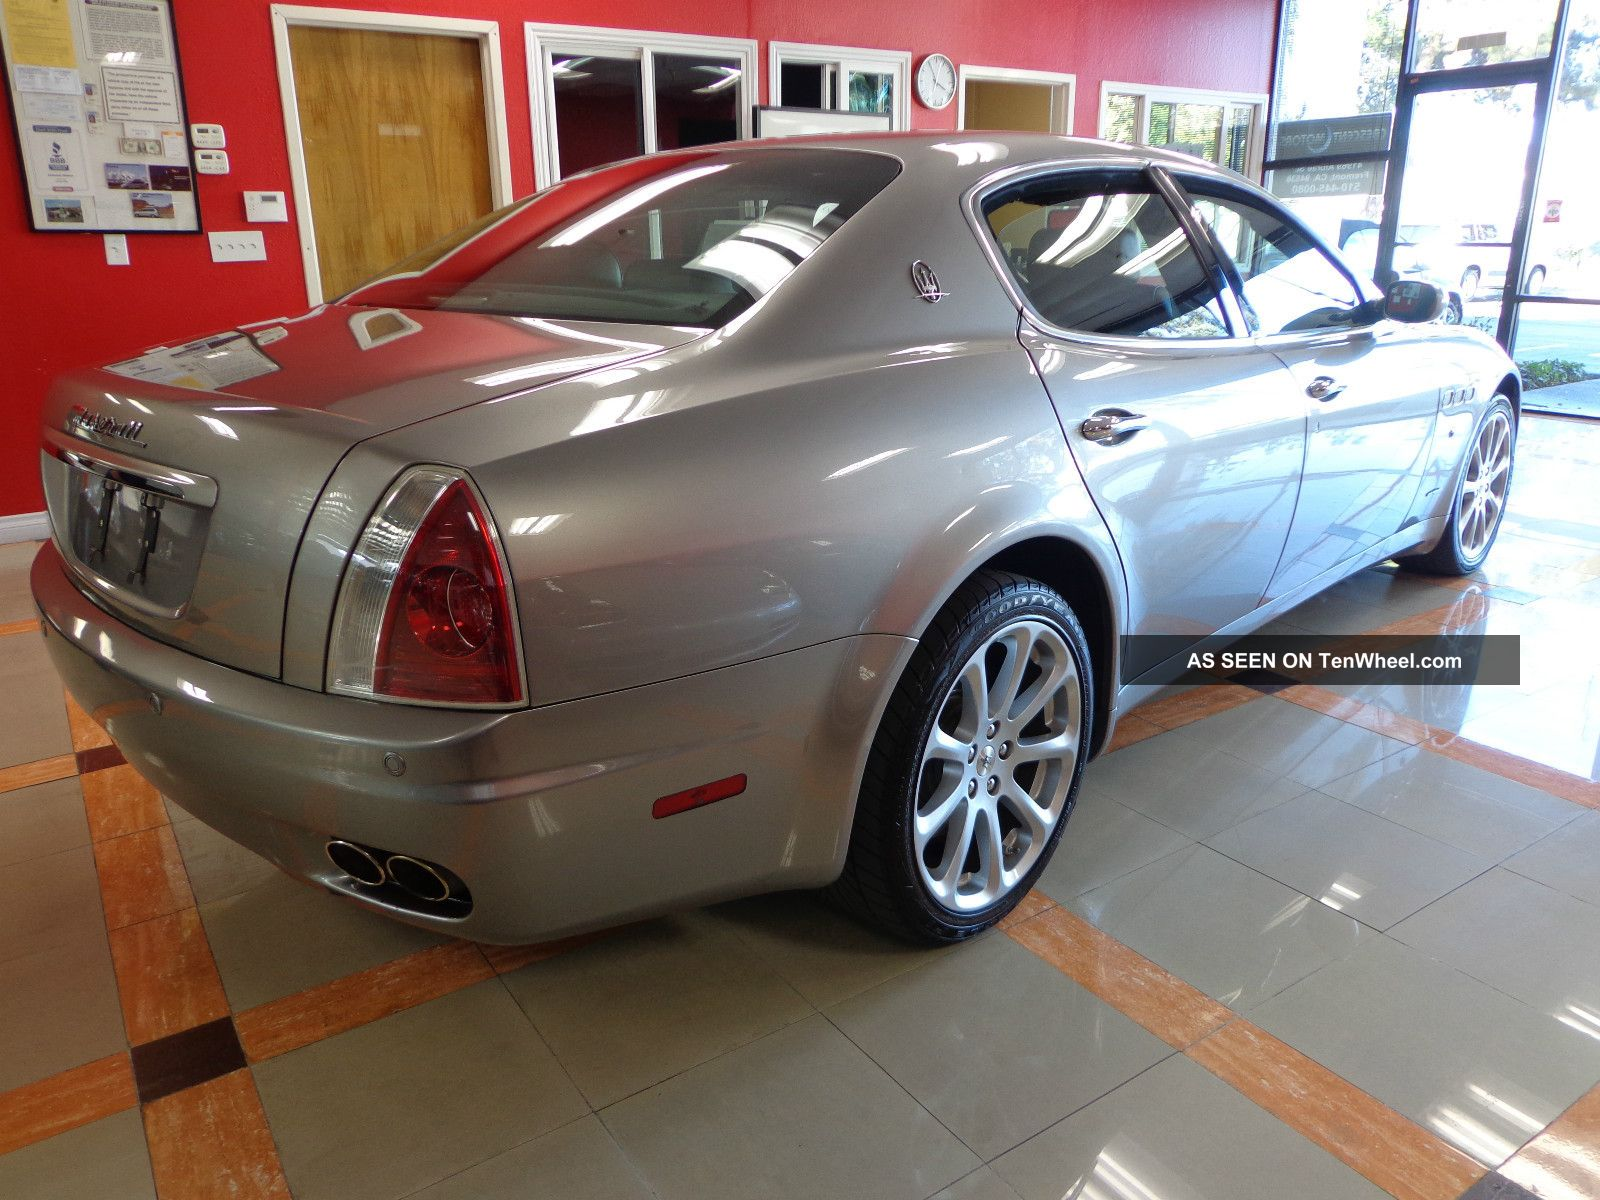 2008 maserati quattroporte executive gt low mileage. Black Bedroom Furniture Sets. Home Design Ideas